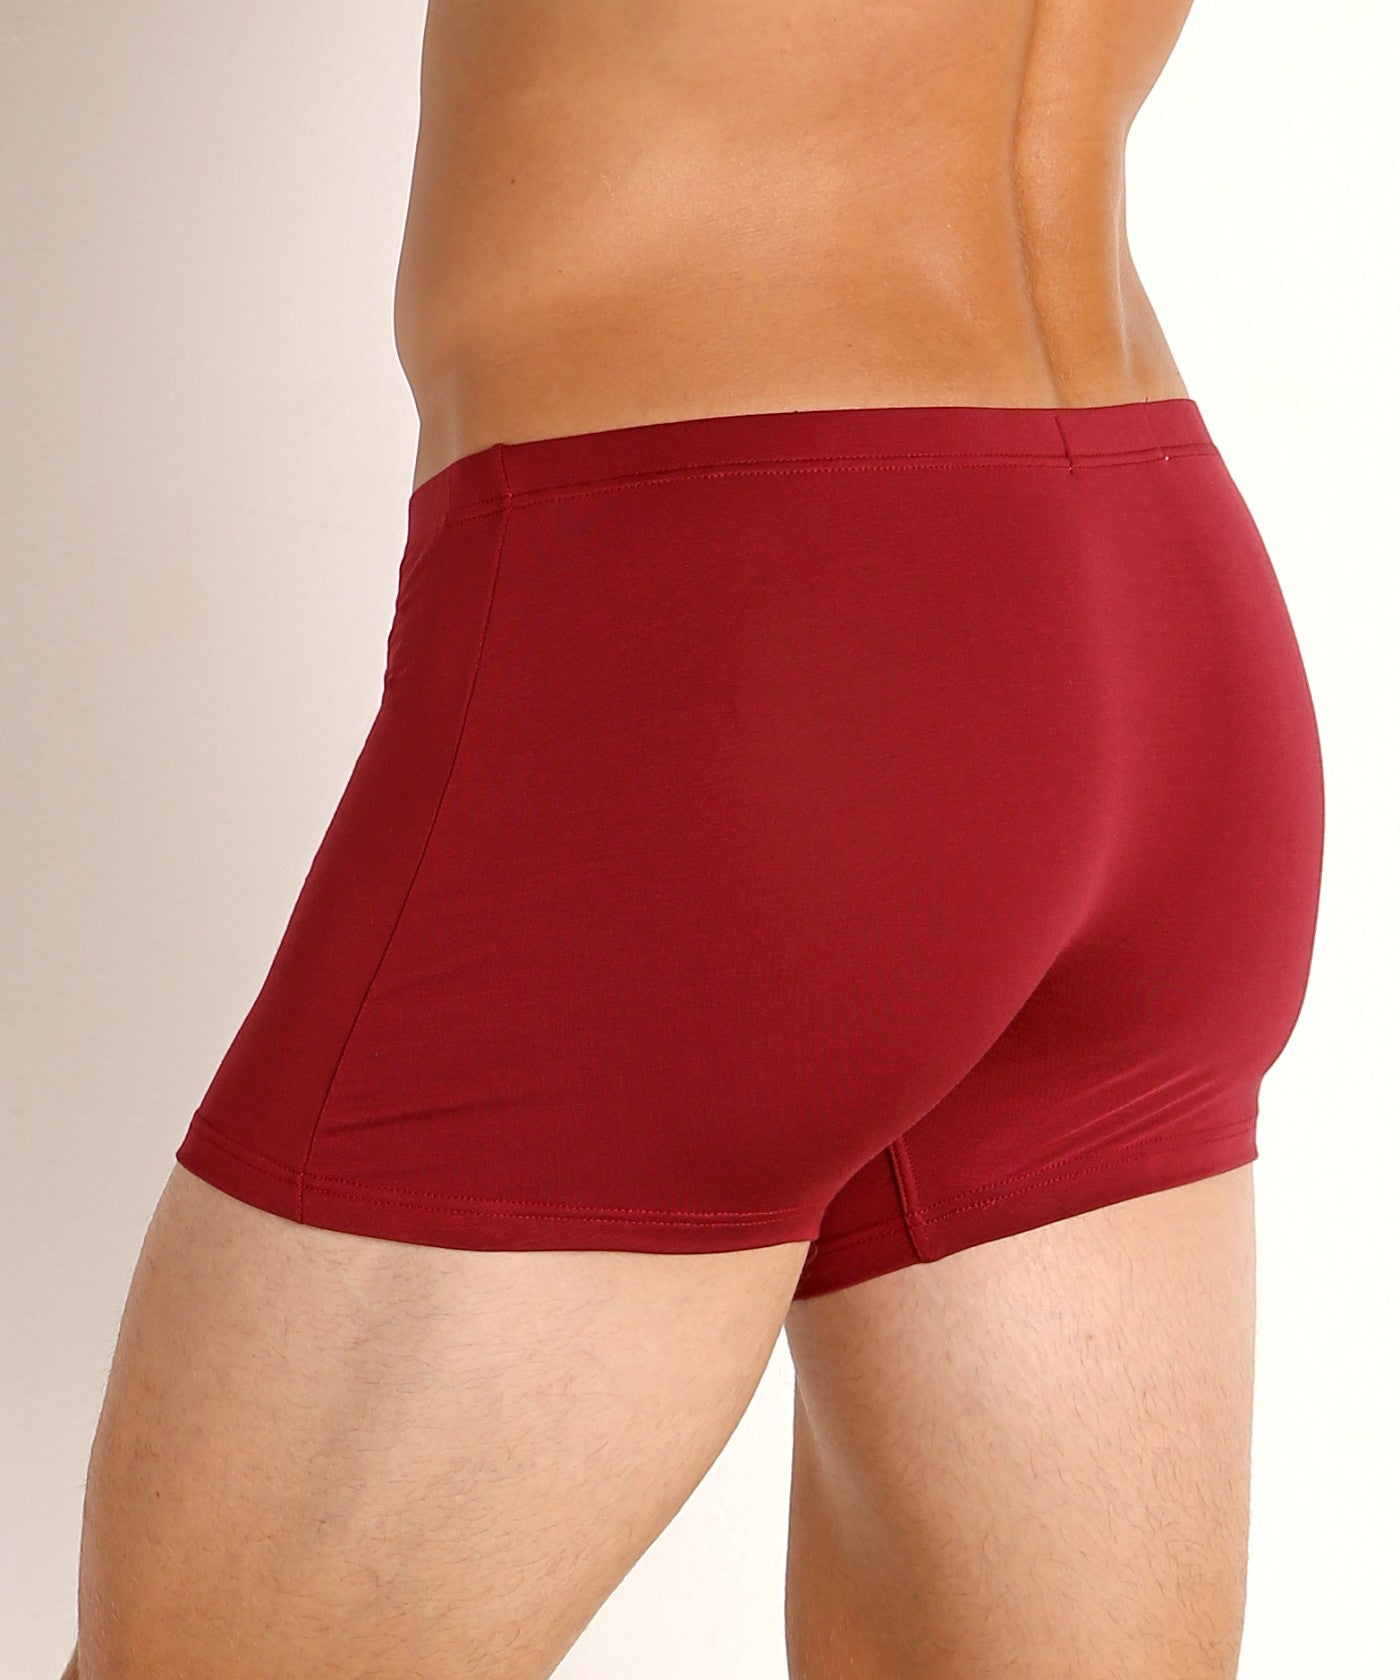 LUX NATURAL POUCH LOW RISE TRUNK